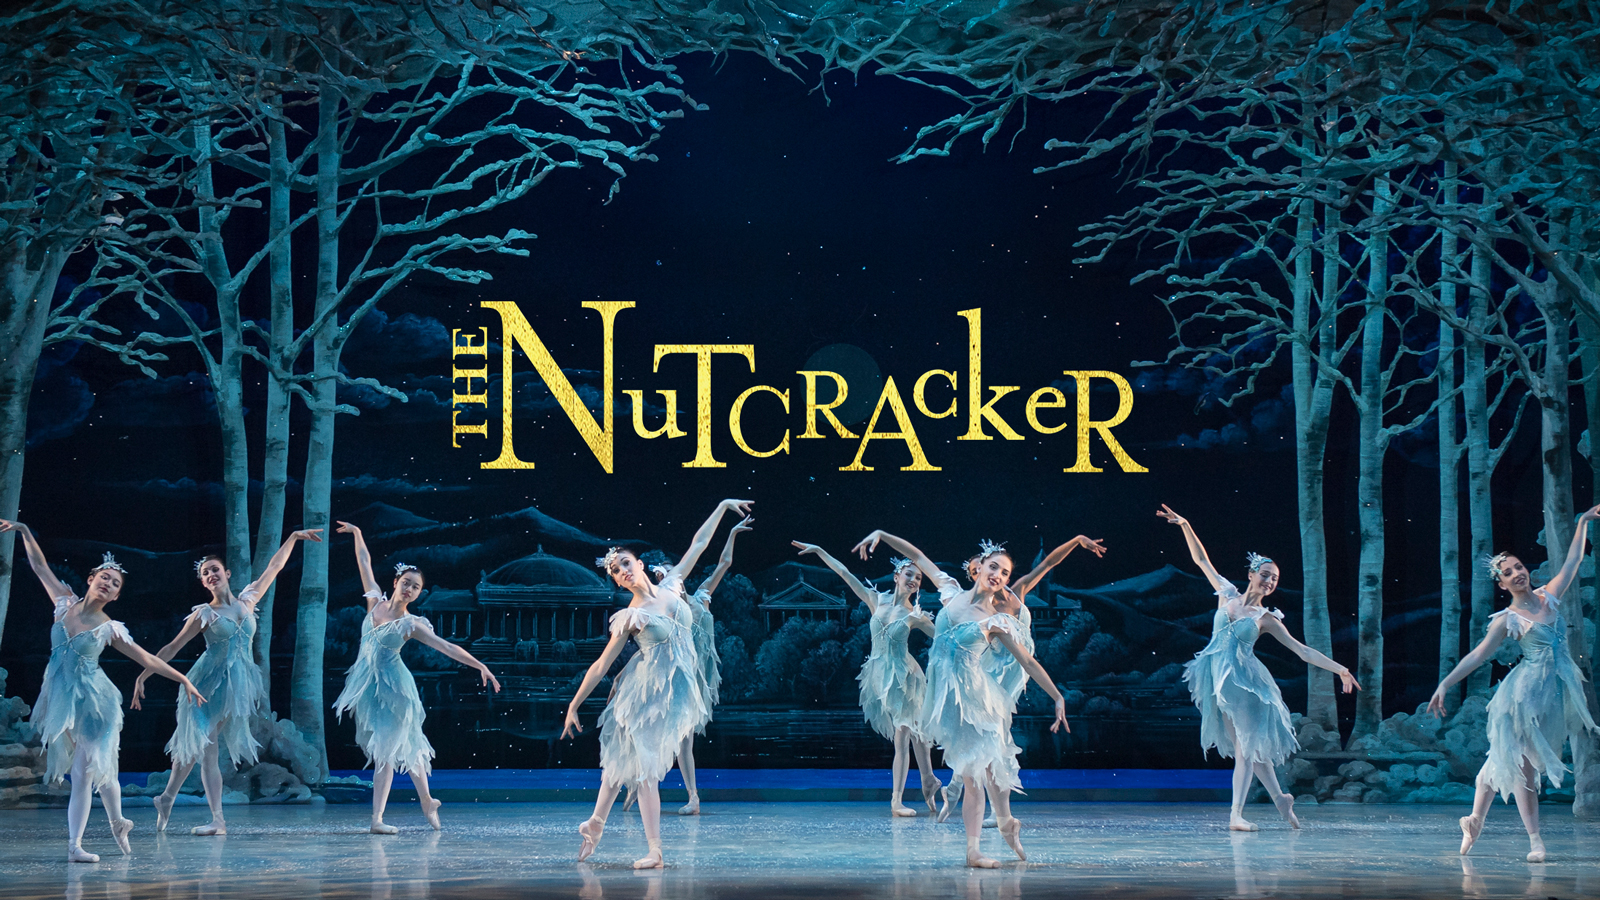 NUTCRACKER-list-image-GOLD.jpg